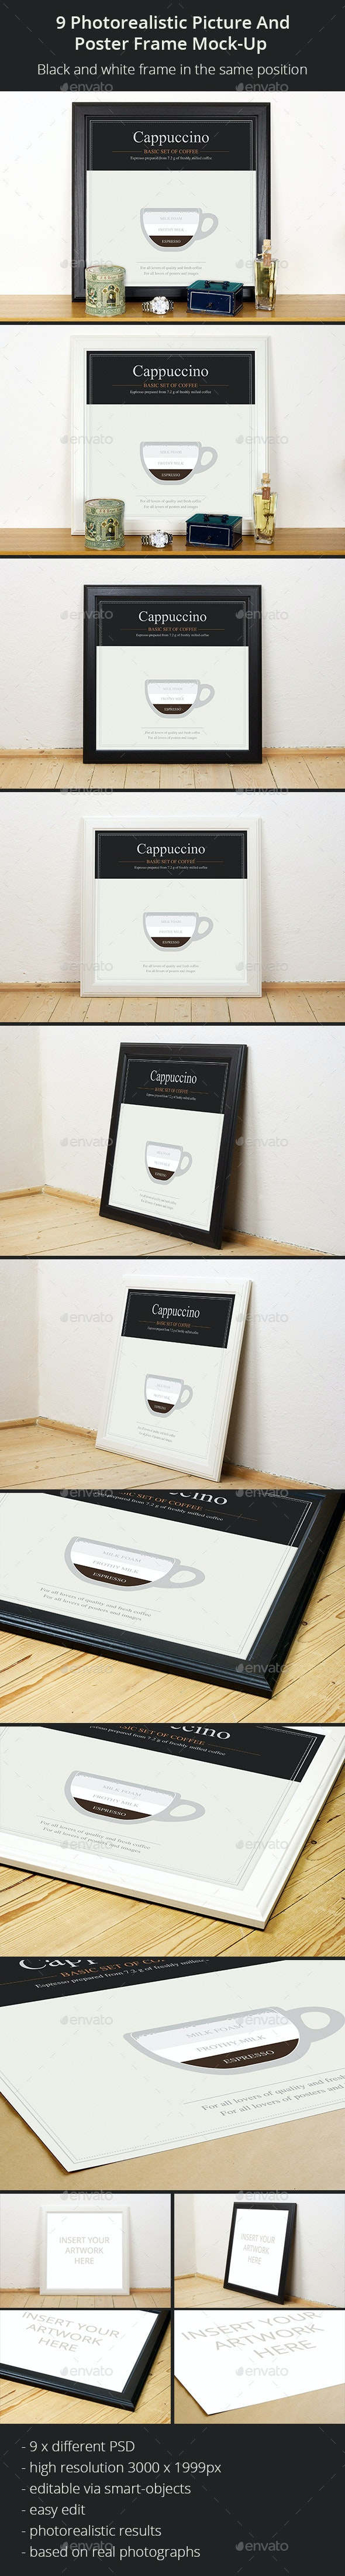 9 Photorealistic Picture and Poster Frame Mock-Up  - Posters Print